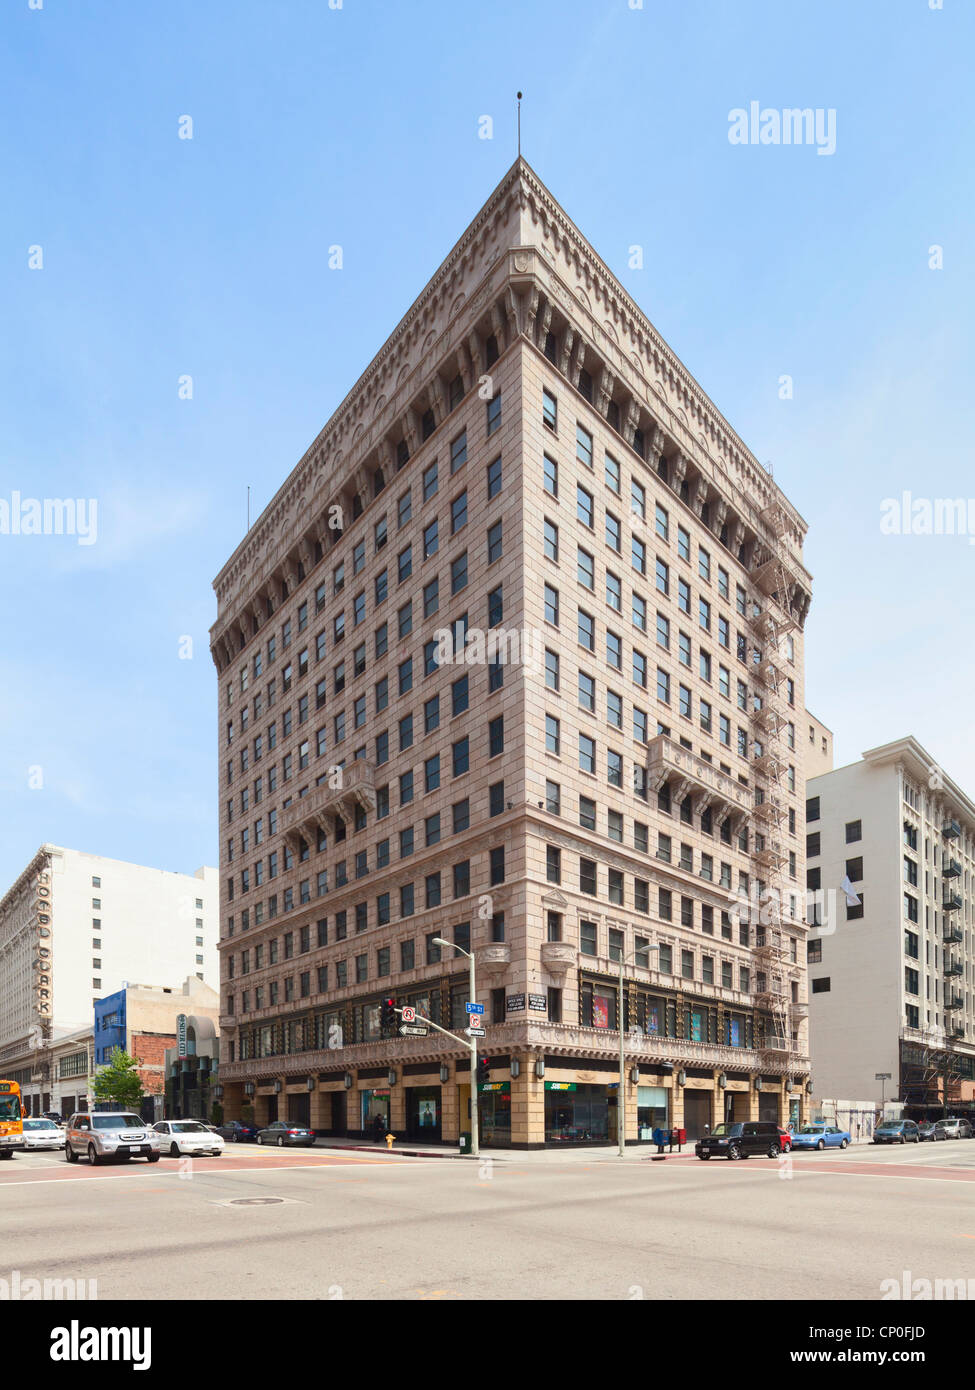 Pershing Square Building Los Angeles - Stock Image